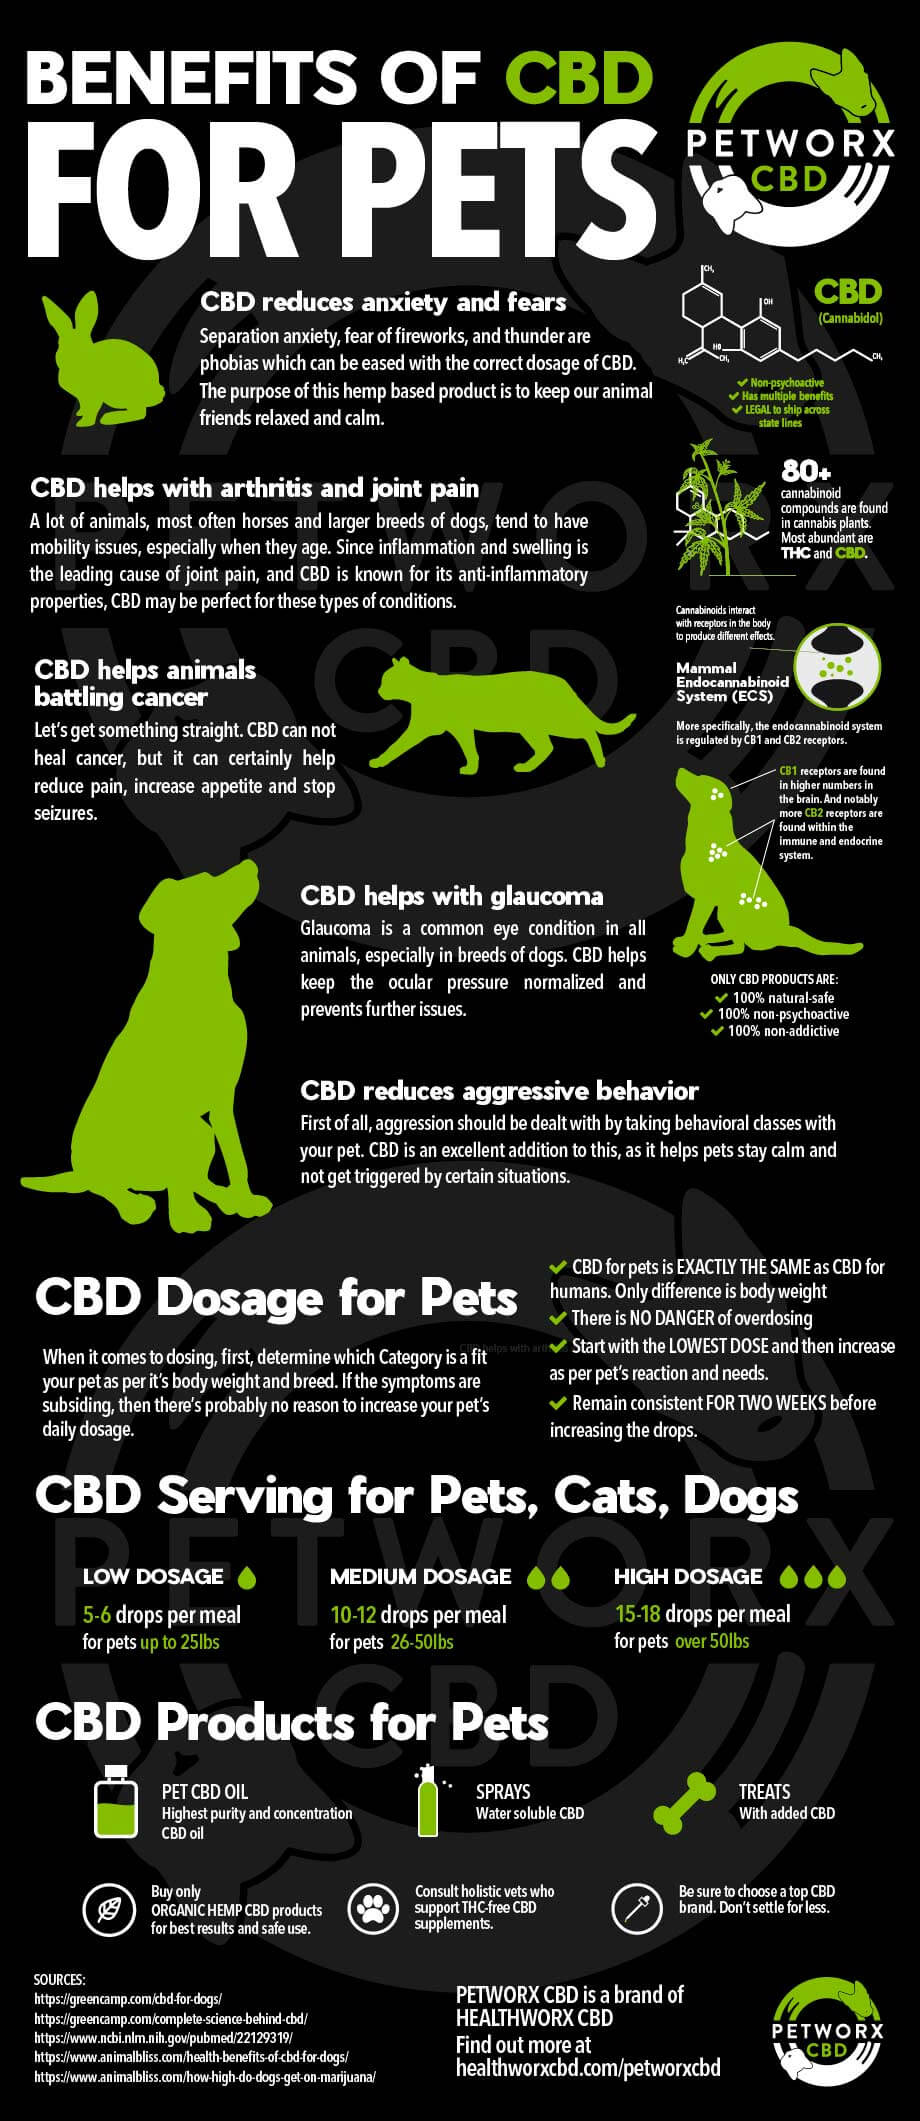 Benefits of CBD for Pets Infographic